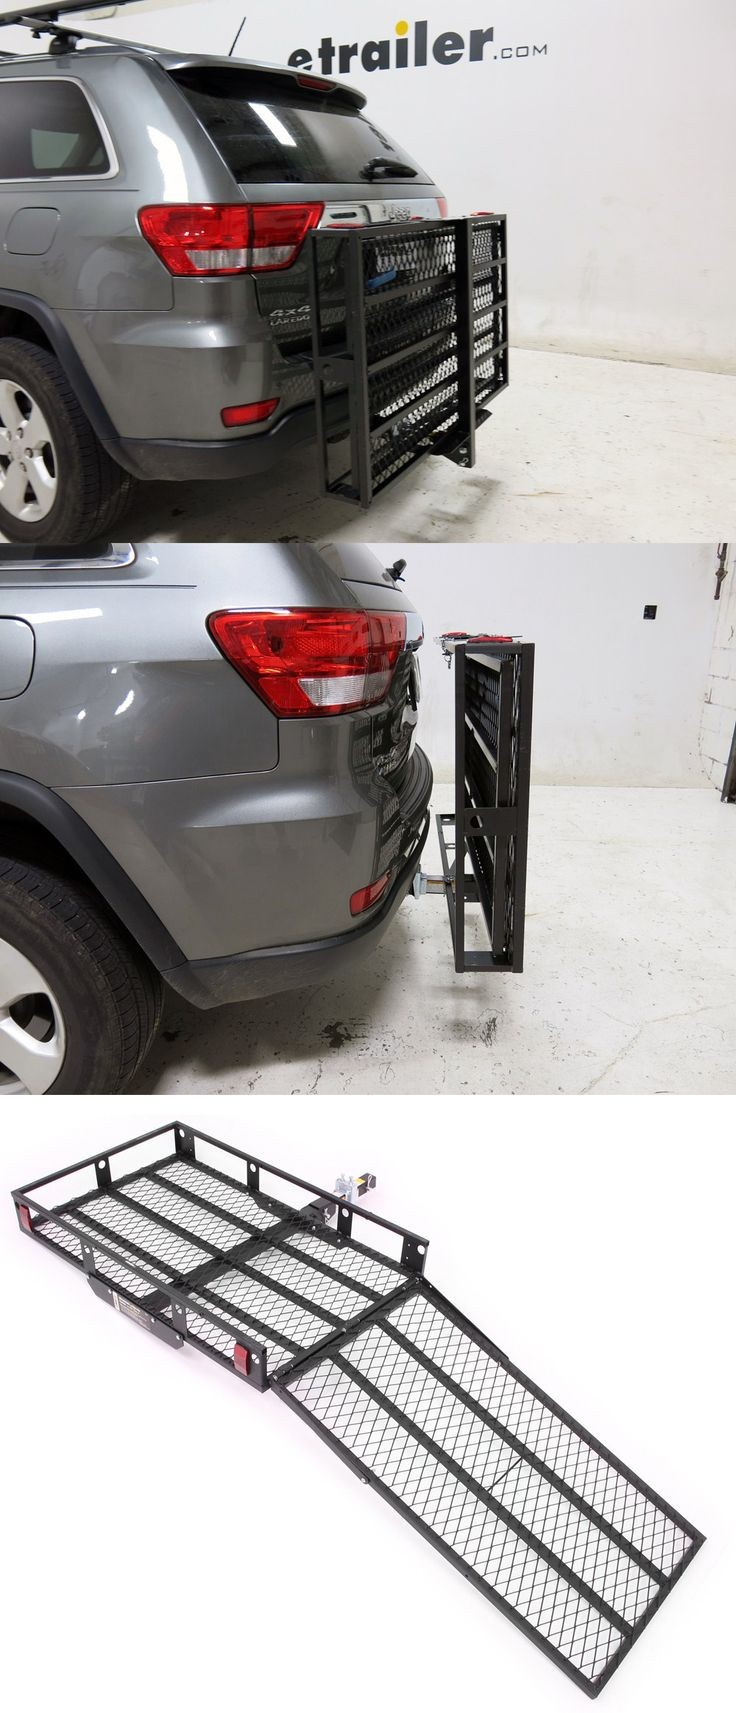 Load or transport a wheelchair or lawn mower with an extra wide cargo carrier